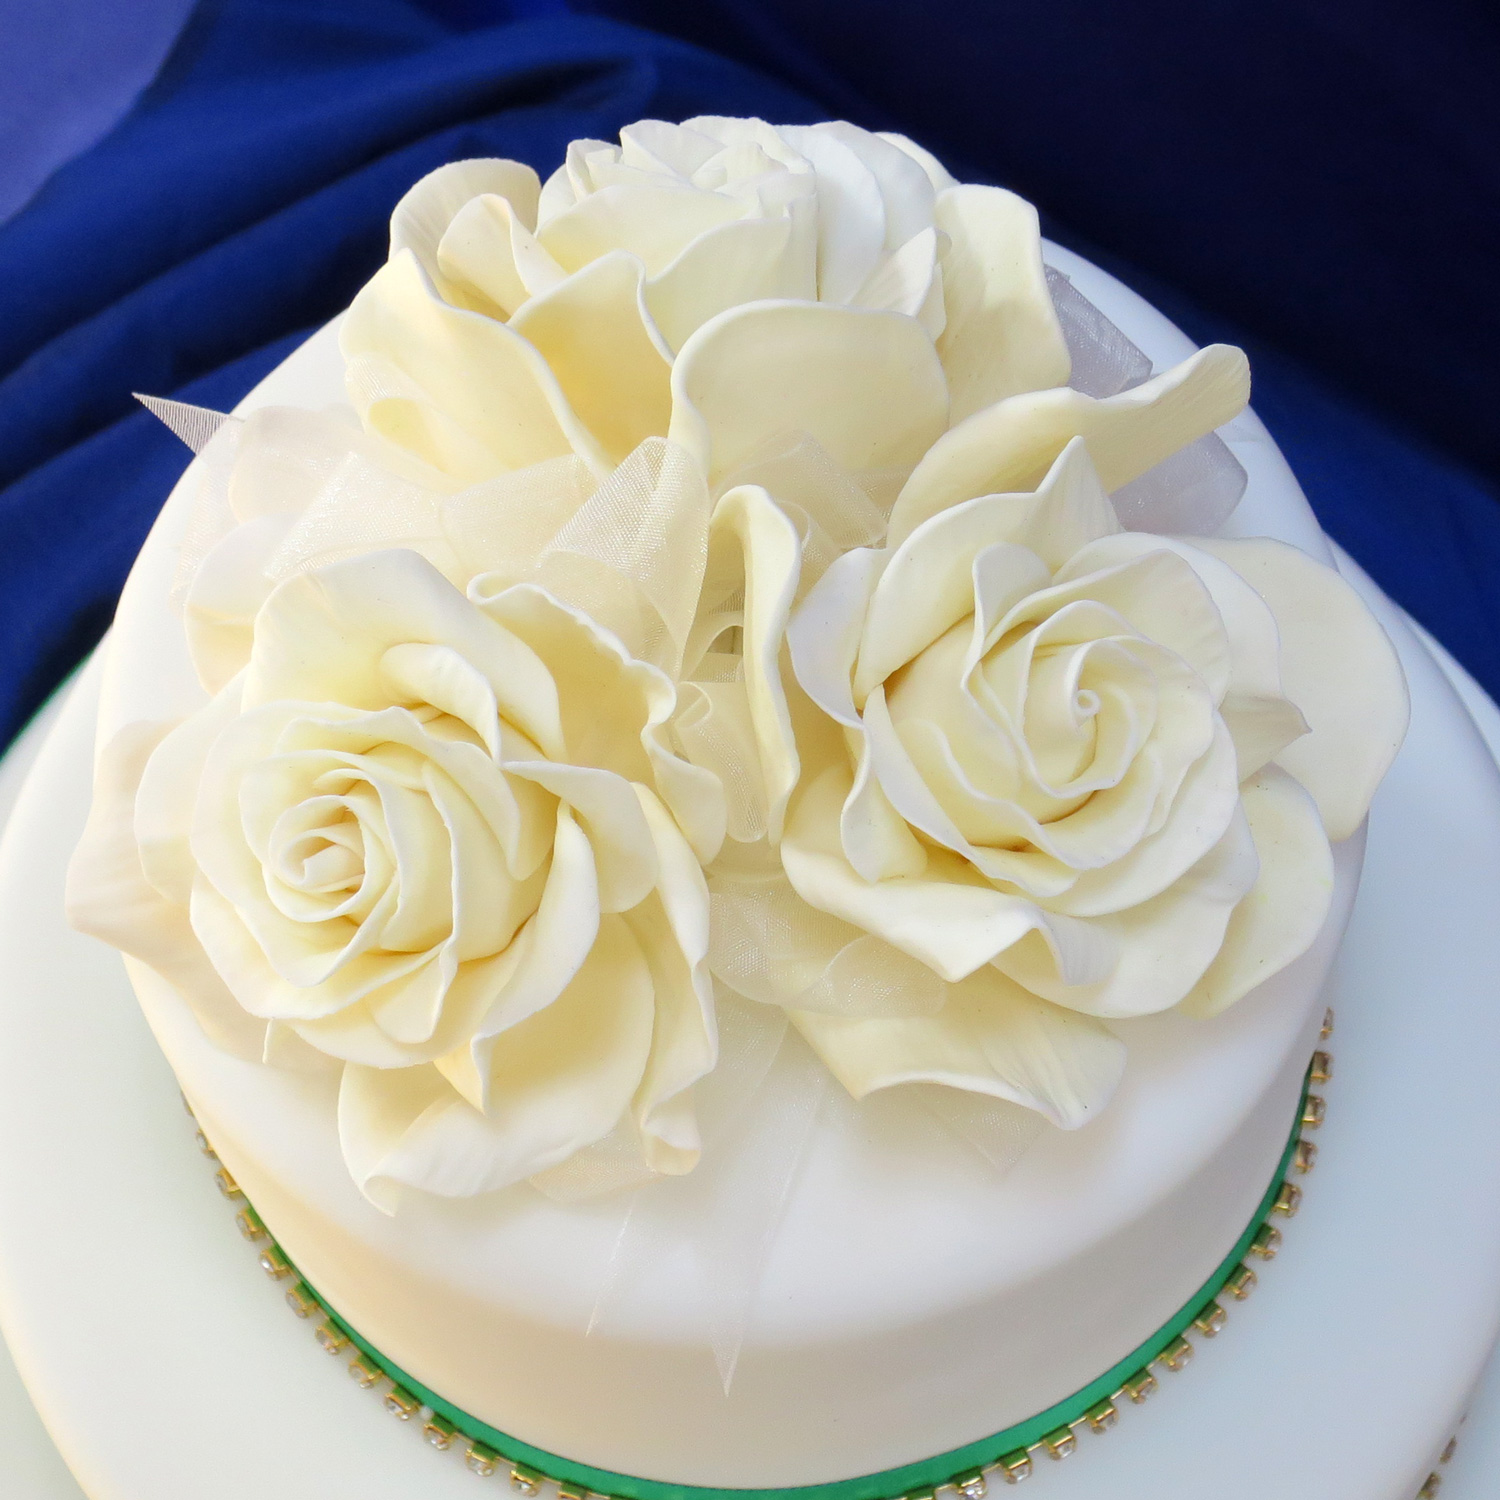 Giant Ivory Rose Cake Topper Hand crafted Sugar Rose Wedding Cake